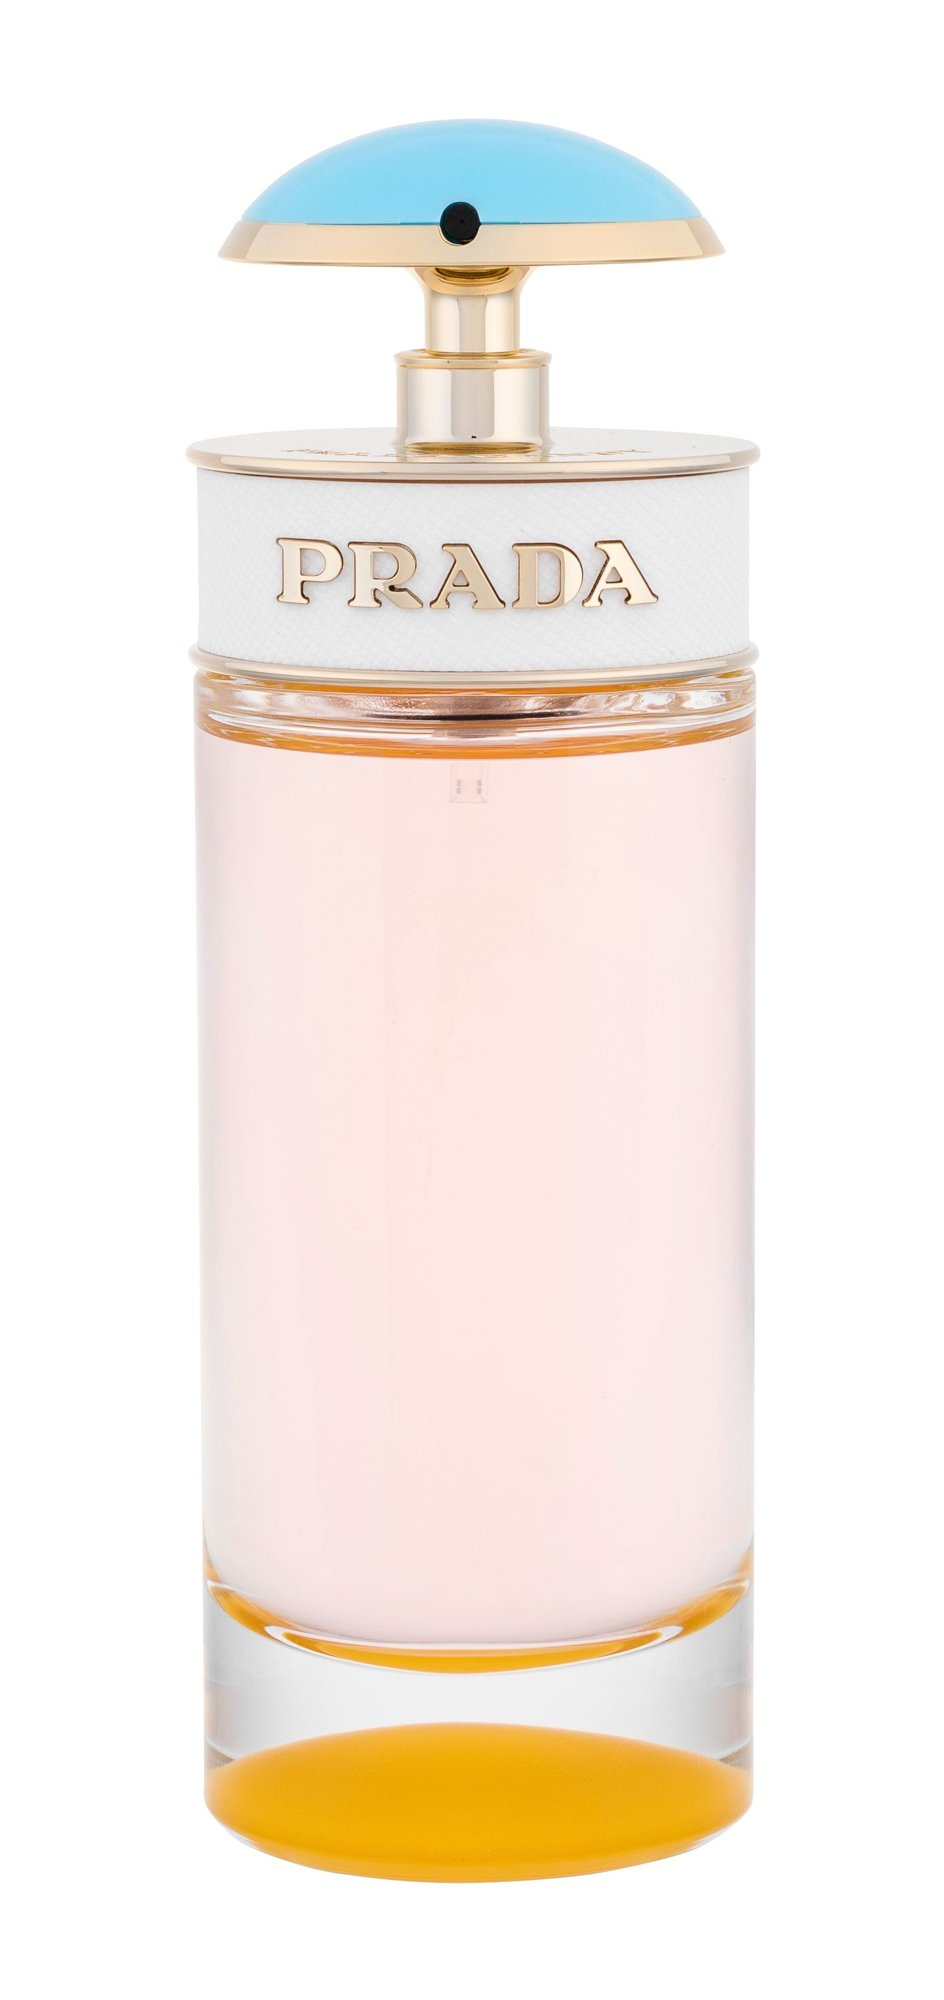 Prada Candy Sugar Pop, Parfumovaná voda 80ml, Tester